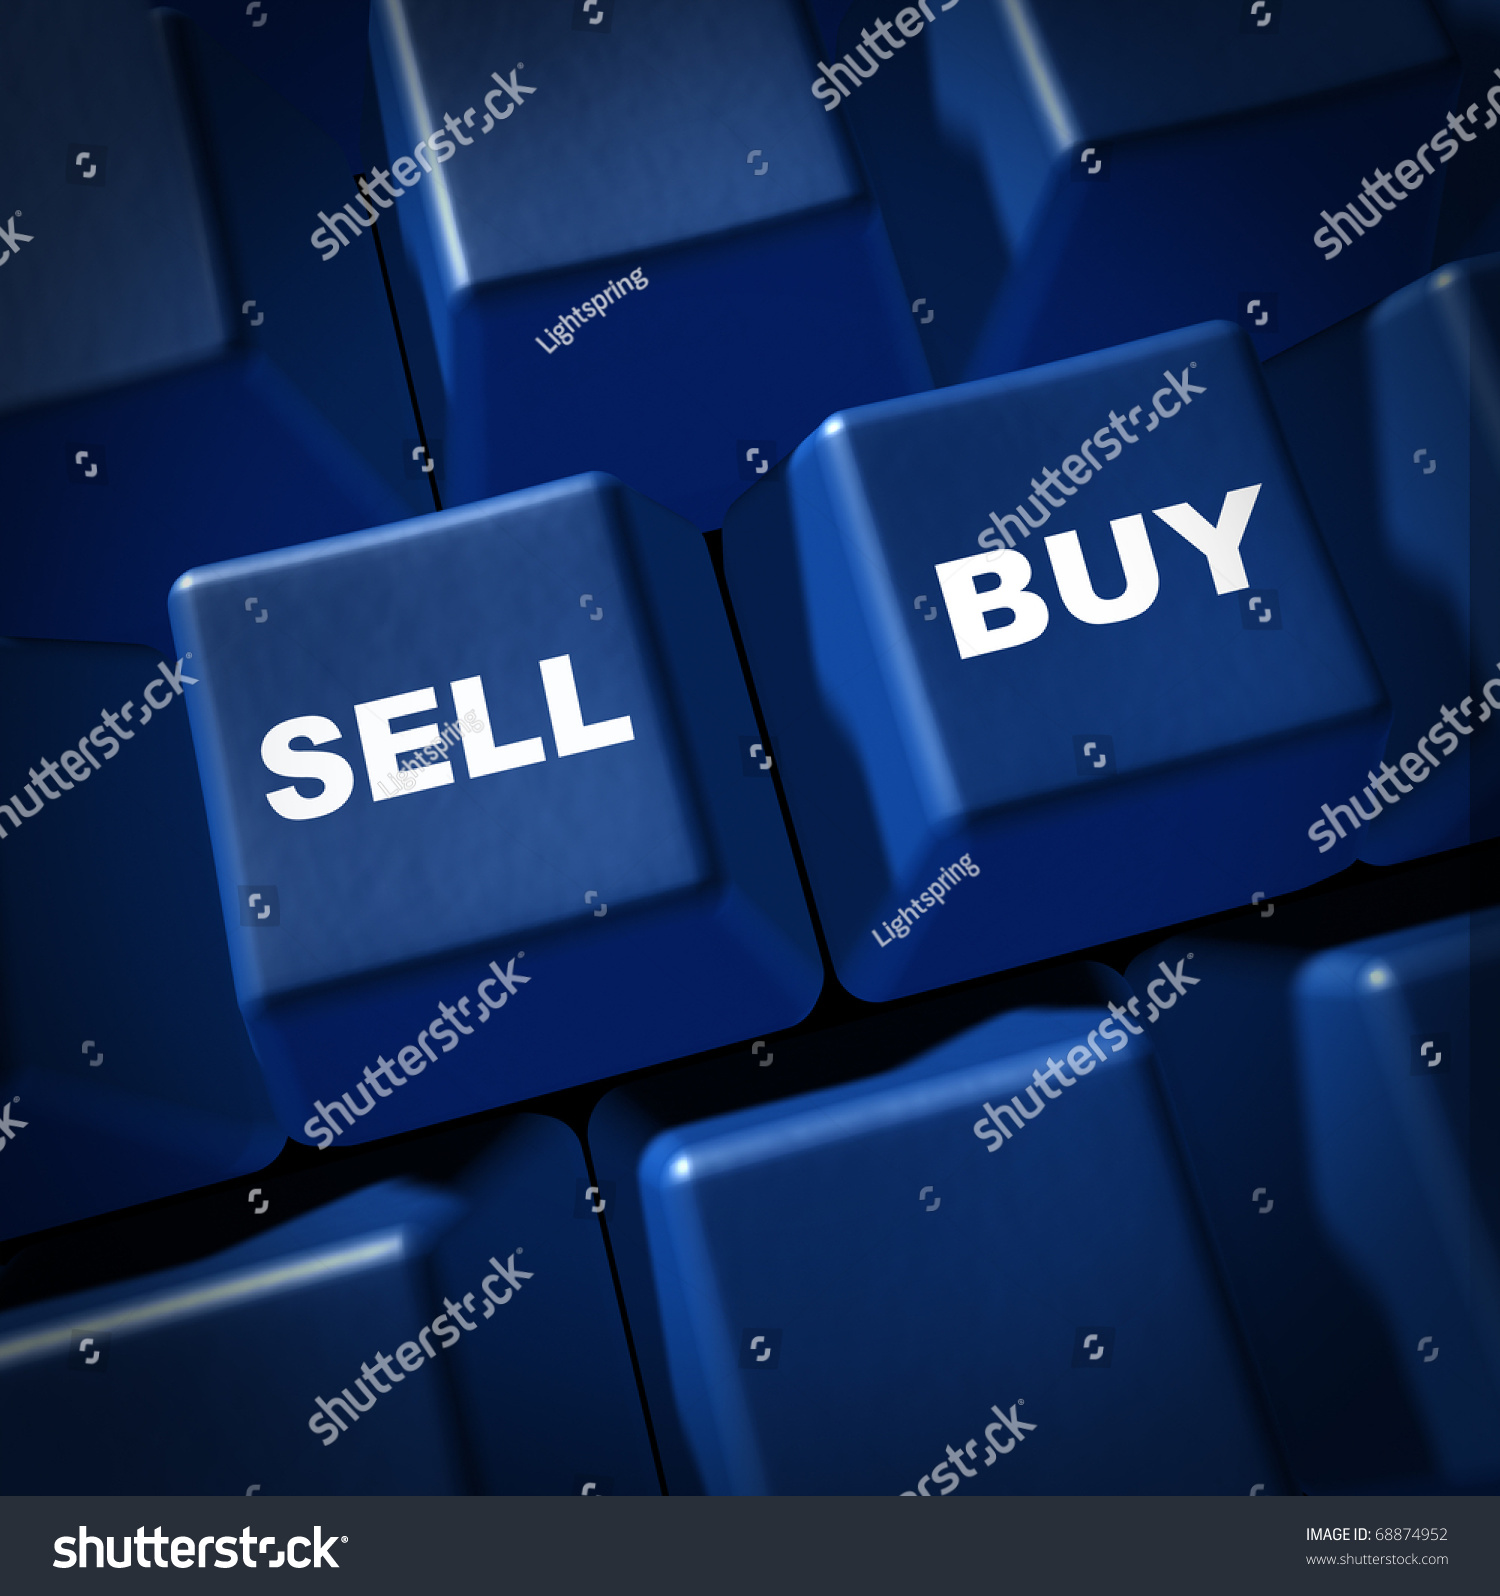 financial literacy buying and selling investments The financial literacy instruction act of 2005 (sc code ann § 59-29-410) was  established to  64 describe how to buy and sell investments 65 explain how .